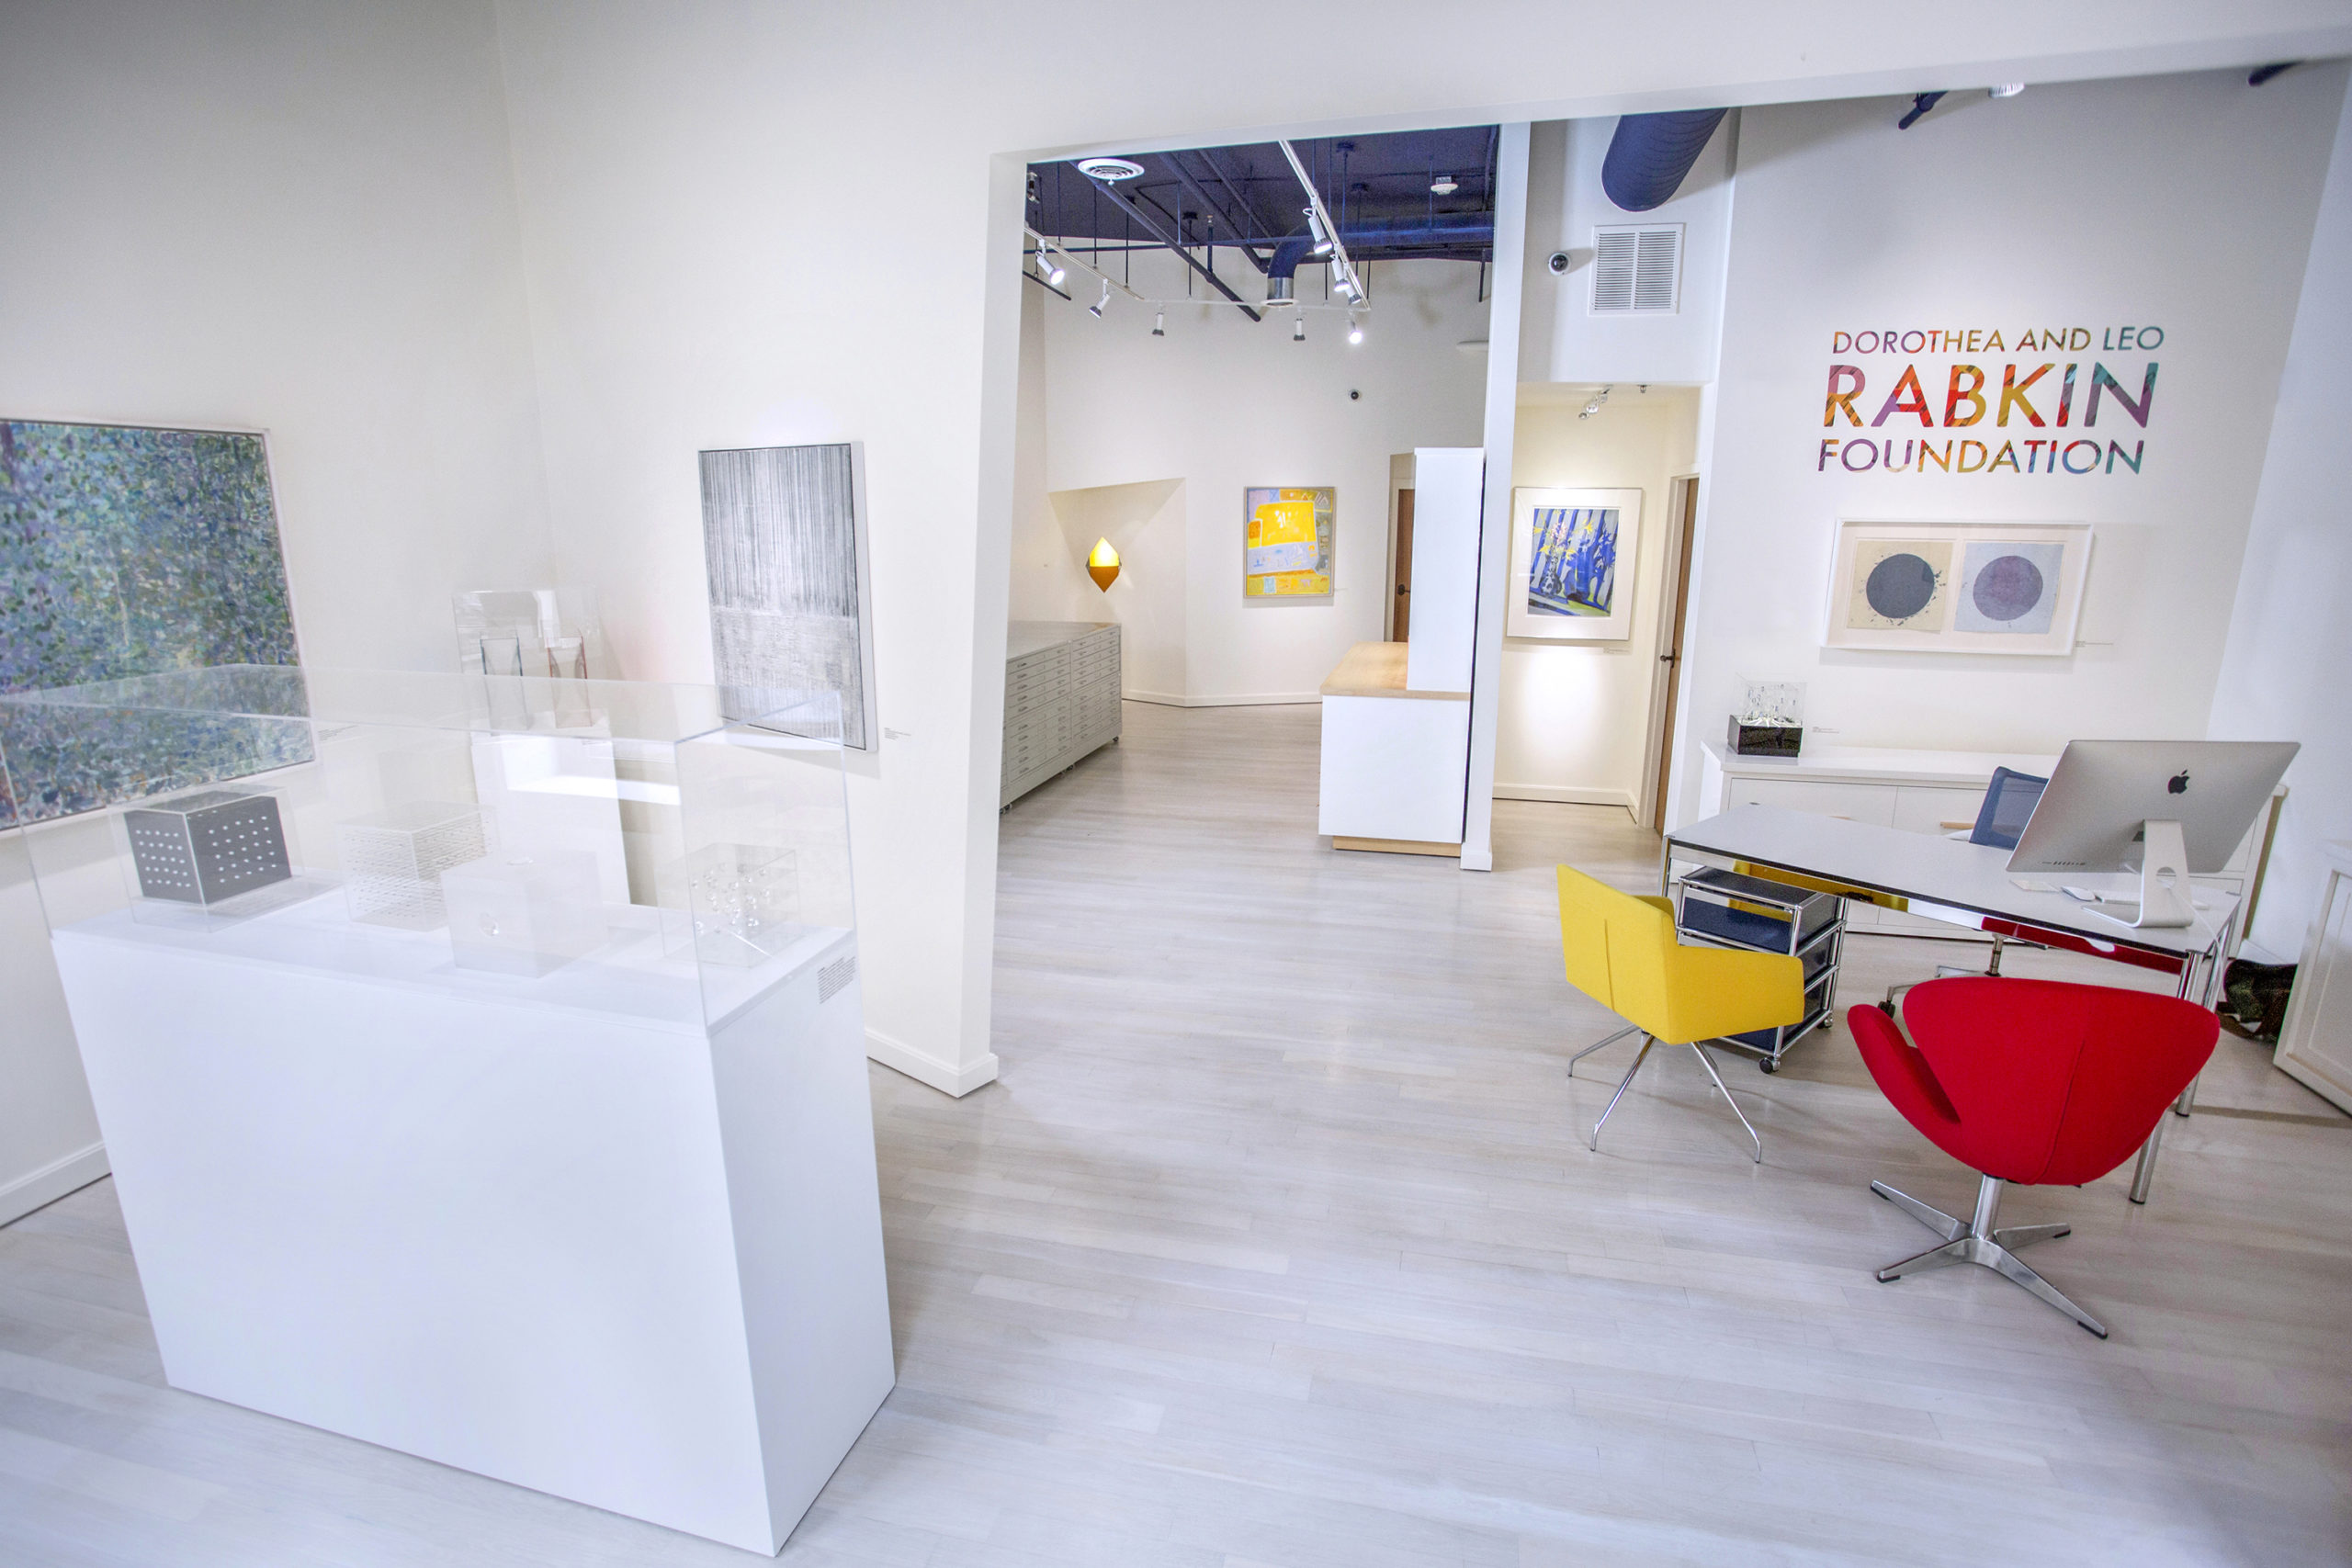 Architectural Photography of Rabkin Foundation, art displayed in the front gallery in Portland, Maine